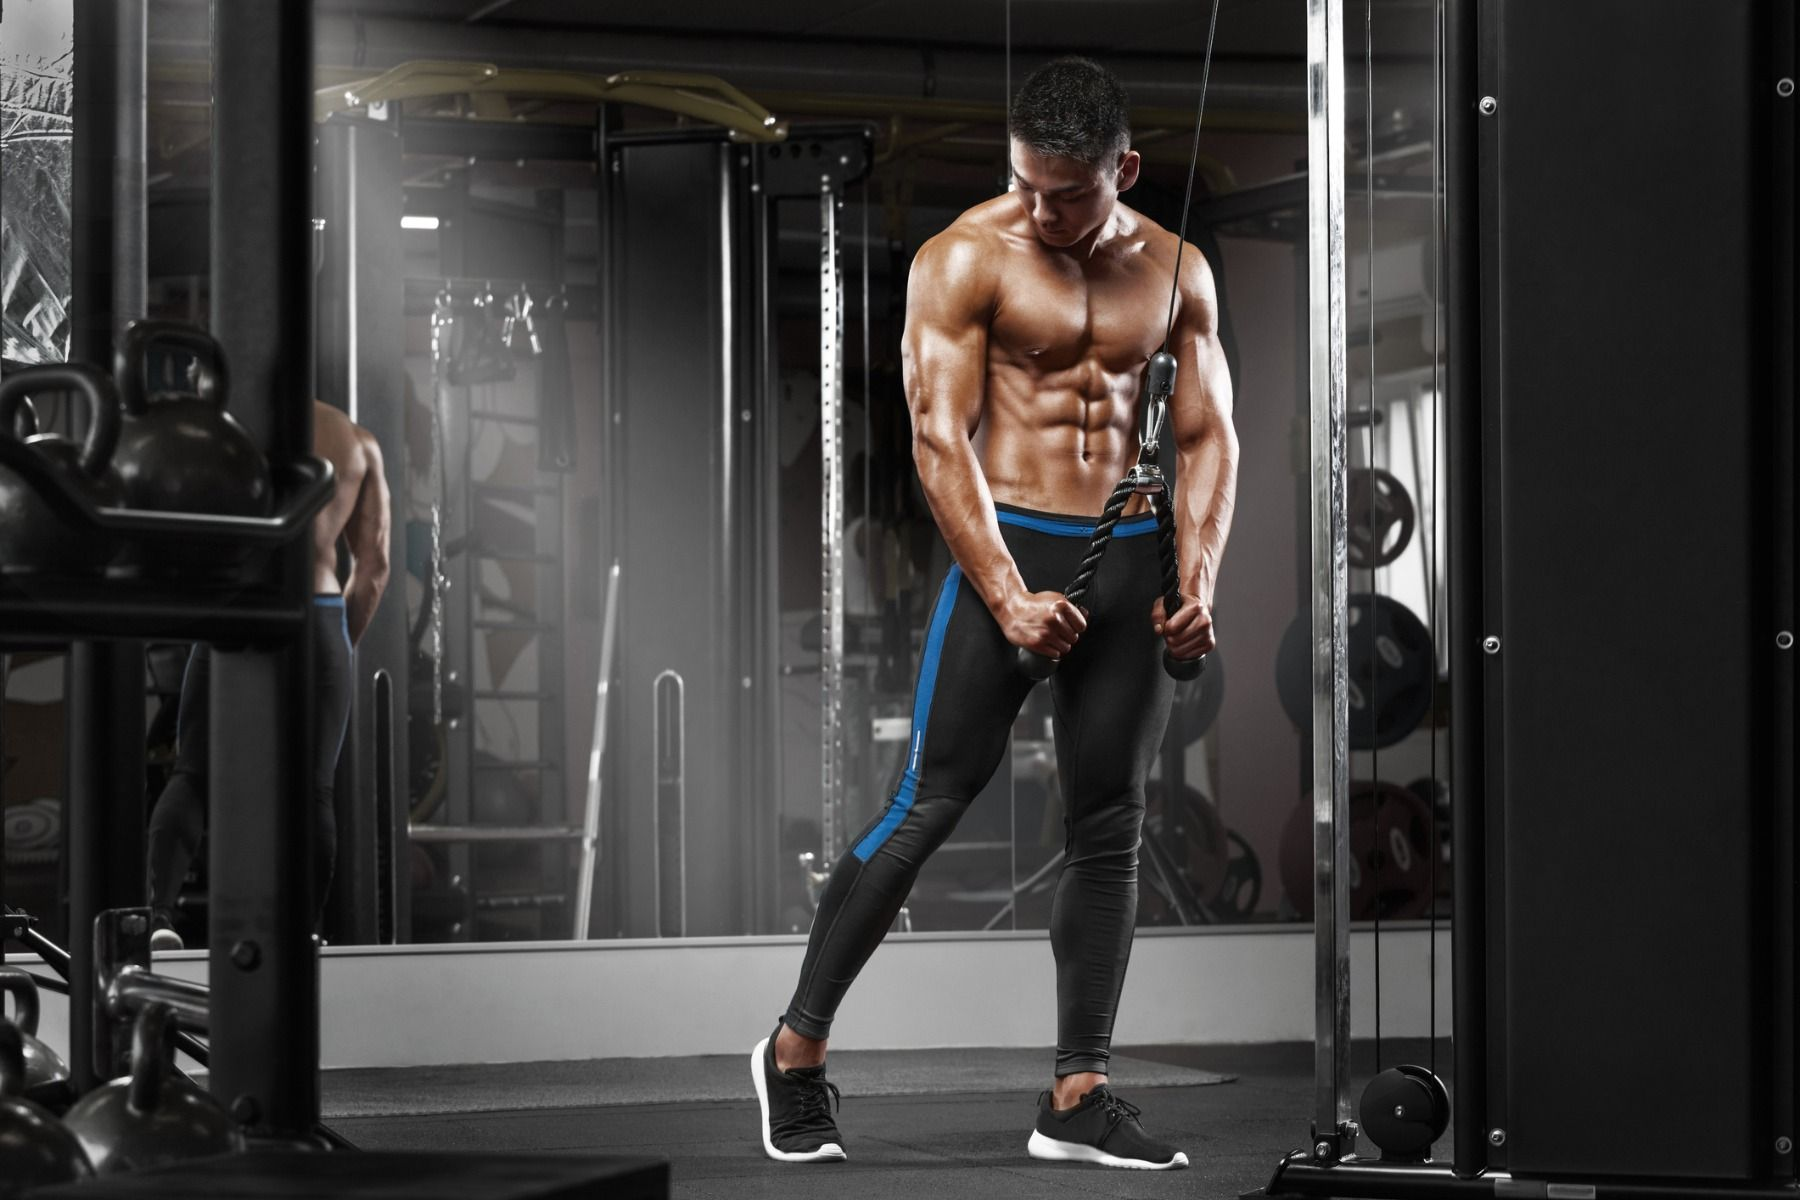 8 exercises that everyone should involve in their training